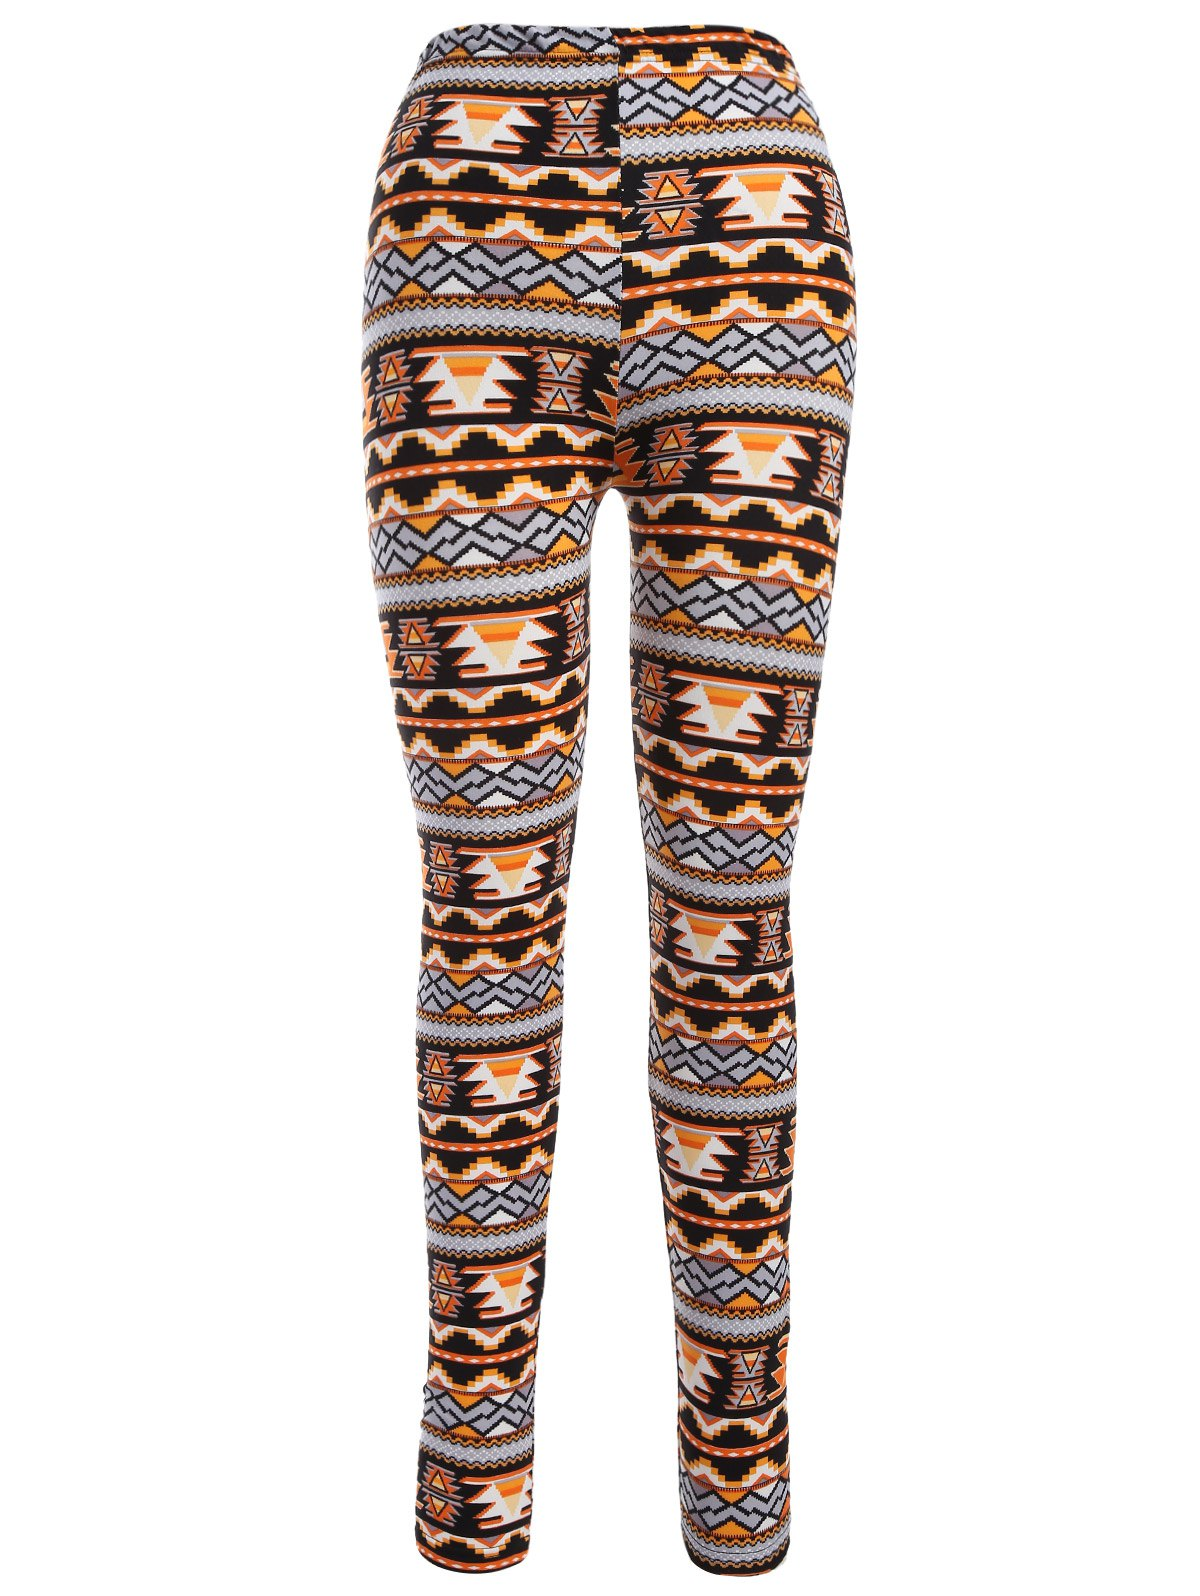 Aztec Print Ankle Leggings proxi rfid card reader without keypad wg26 34 access control rfid reader rf em door access card reader customized rs232 485